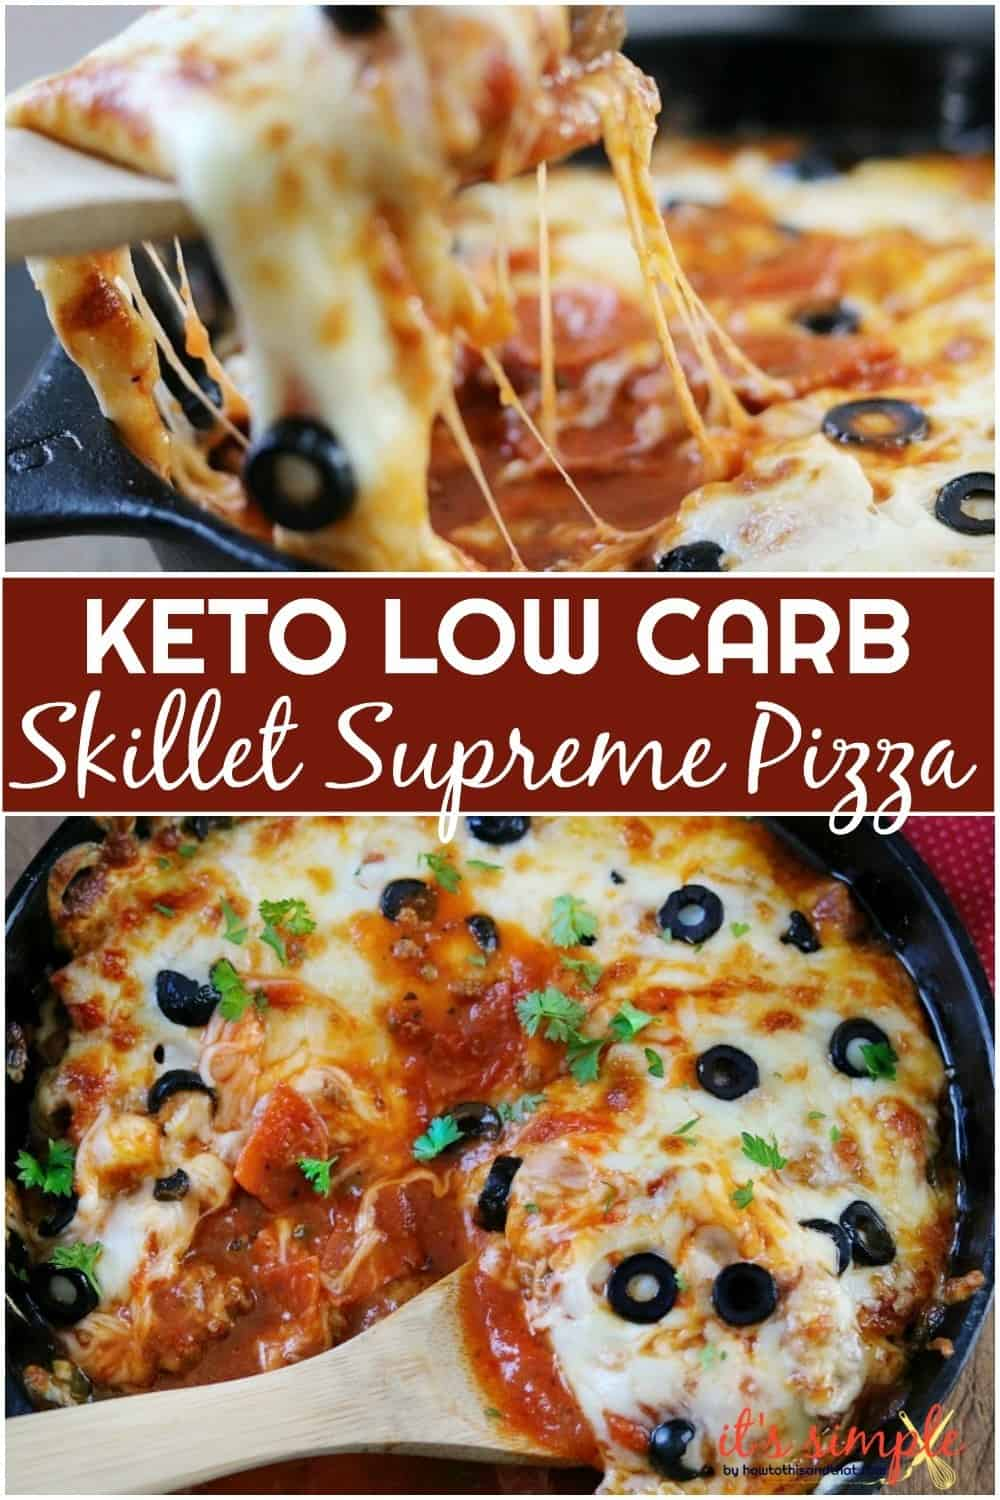 keto low carb skillet pizza